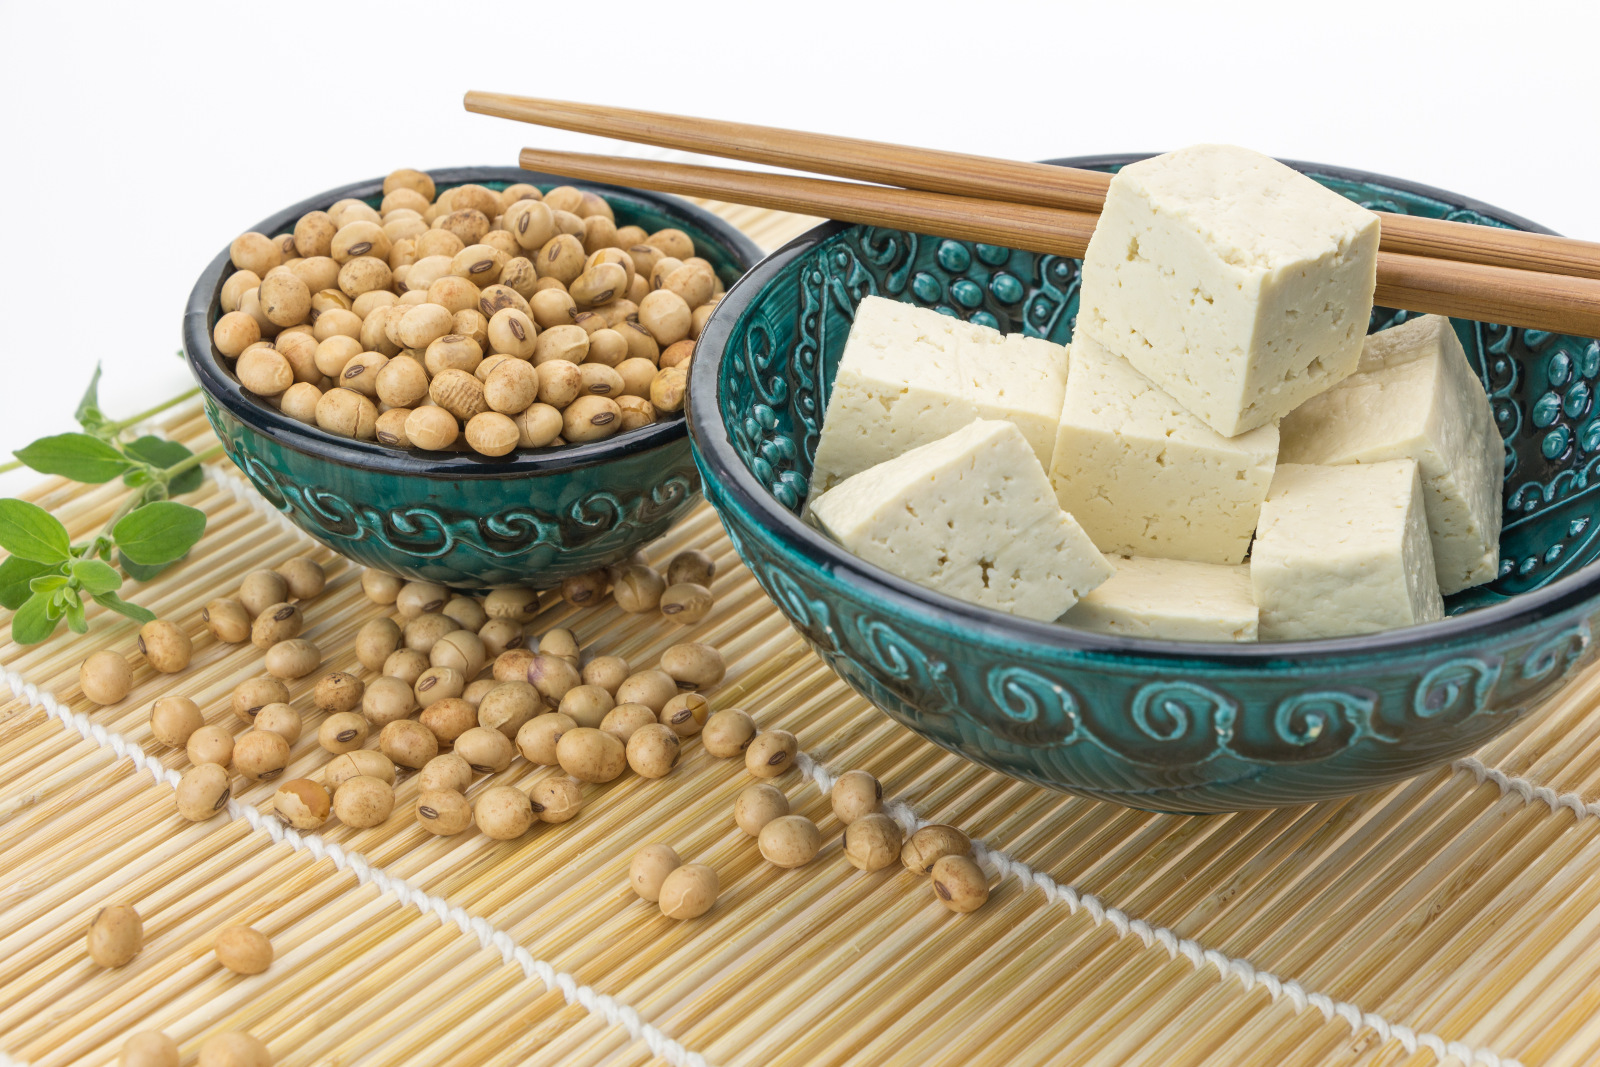 eating-soy-foods-can-reduce-side-effects-of-breast-cancer-treatment